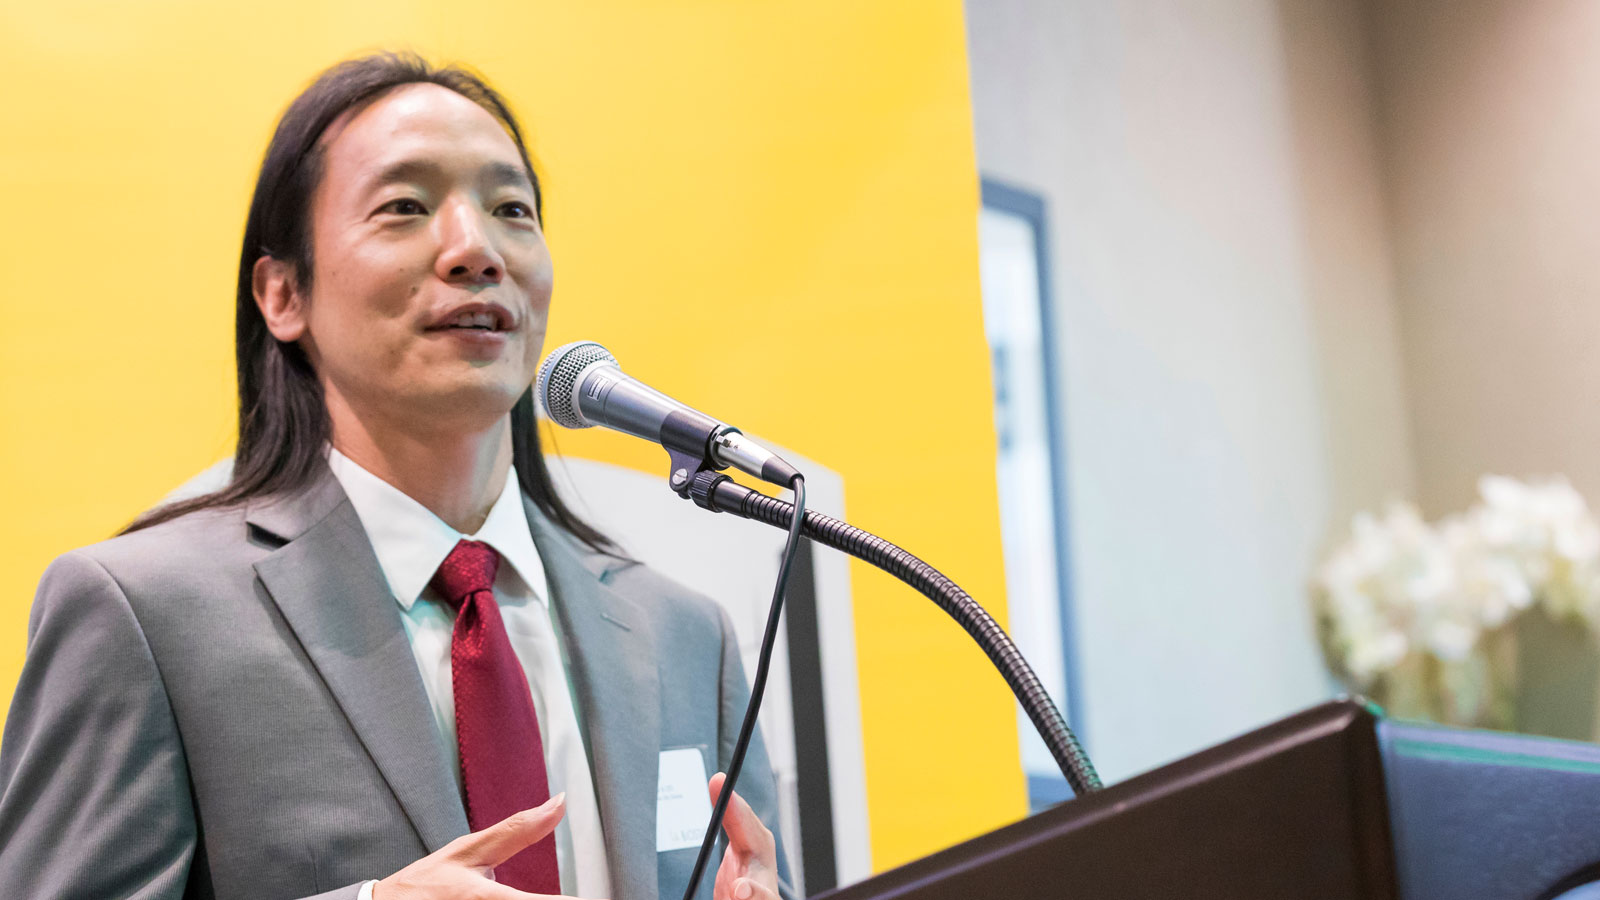 John Chi speaks at the 2017 LA BioStart graduation.